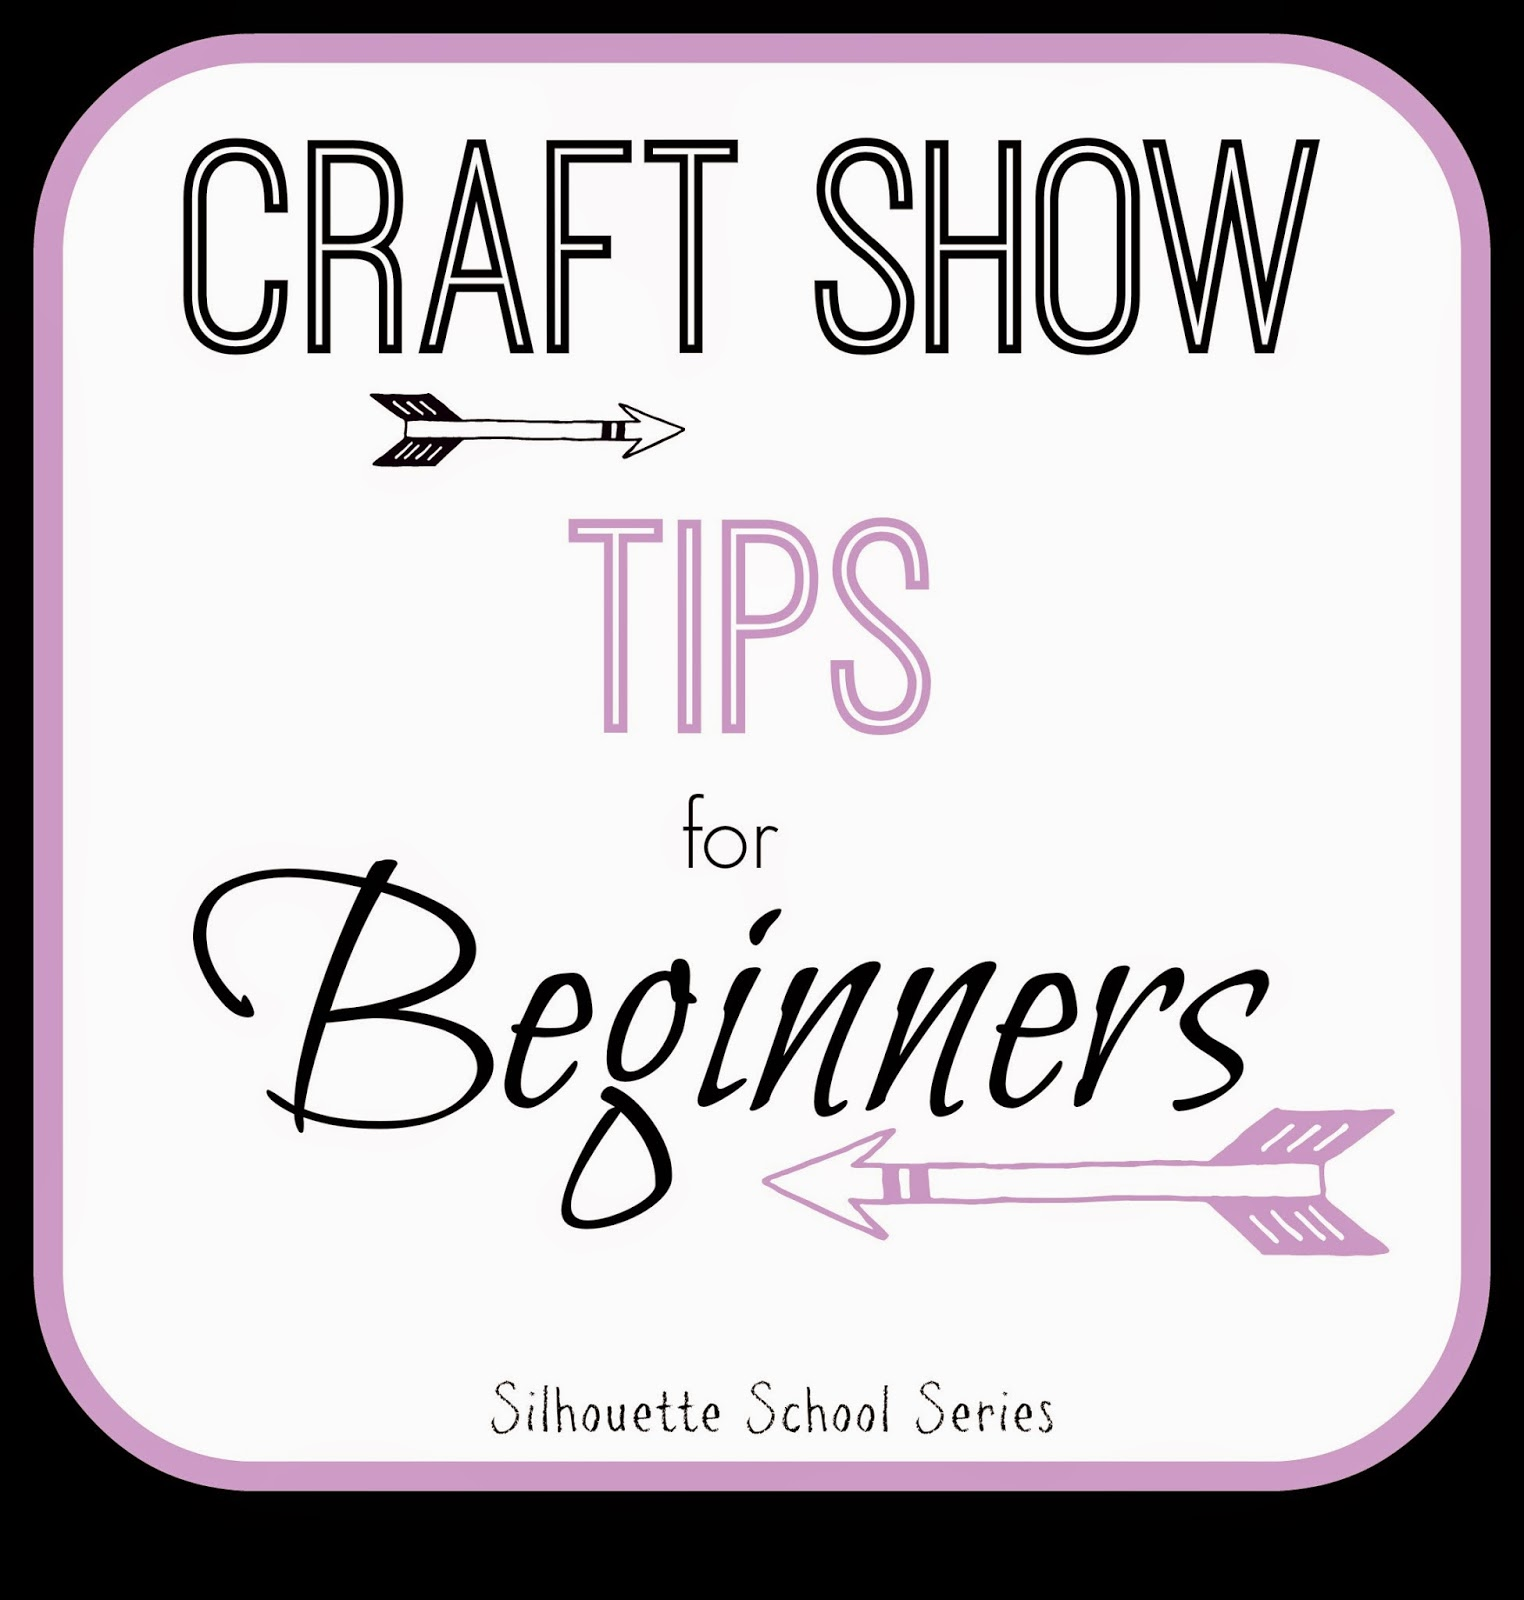 Craft show, tips, beginners